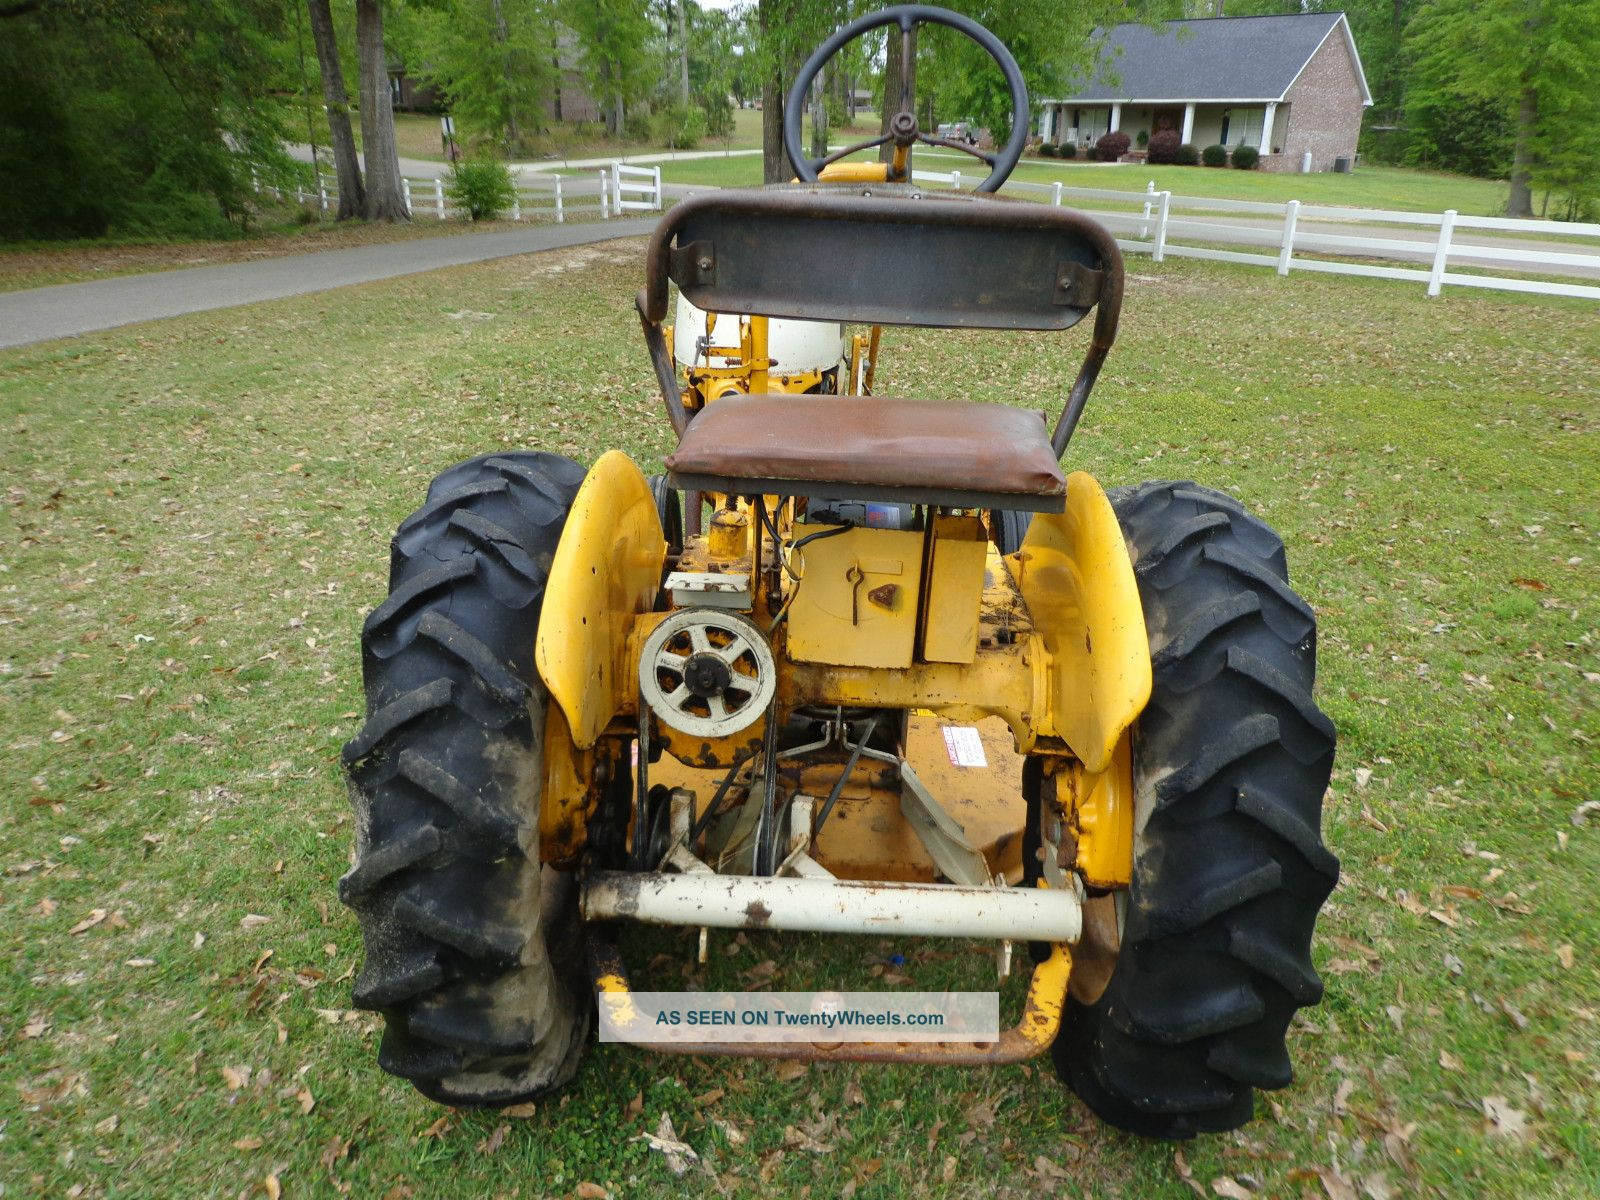 4756 1977 international harvester cub tractor wbelly mower in mississippi on belly dump semi trailers